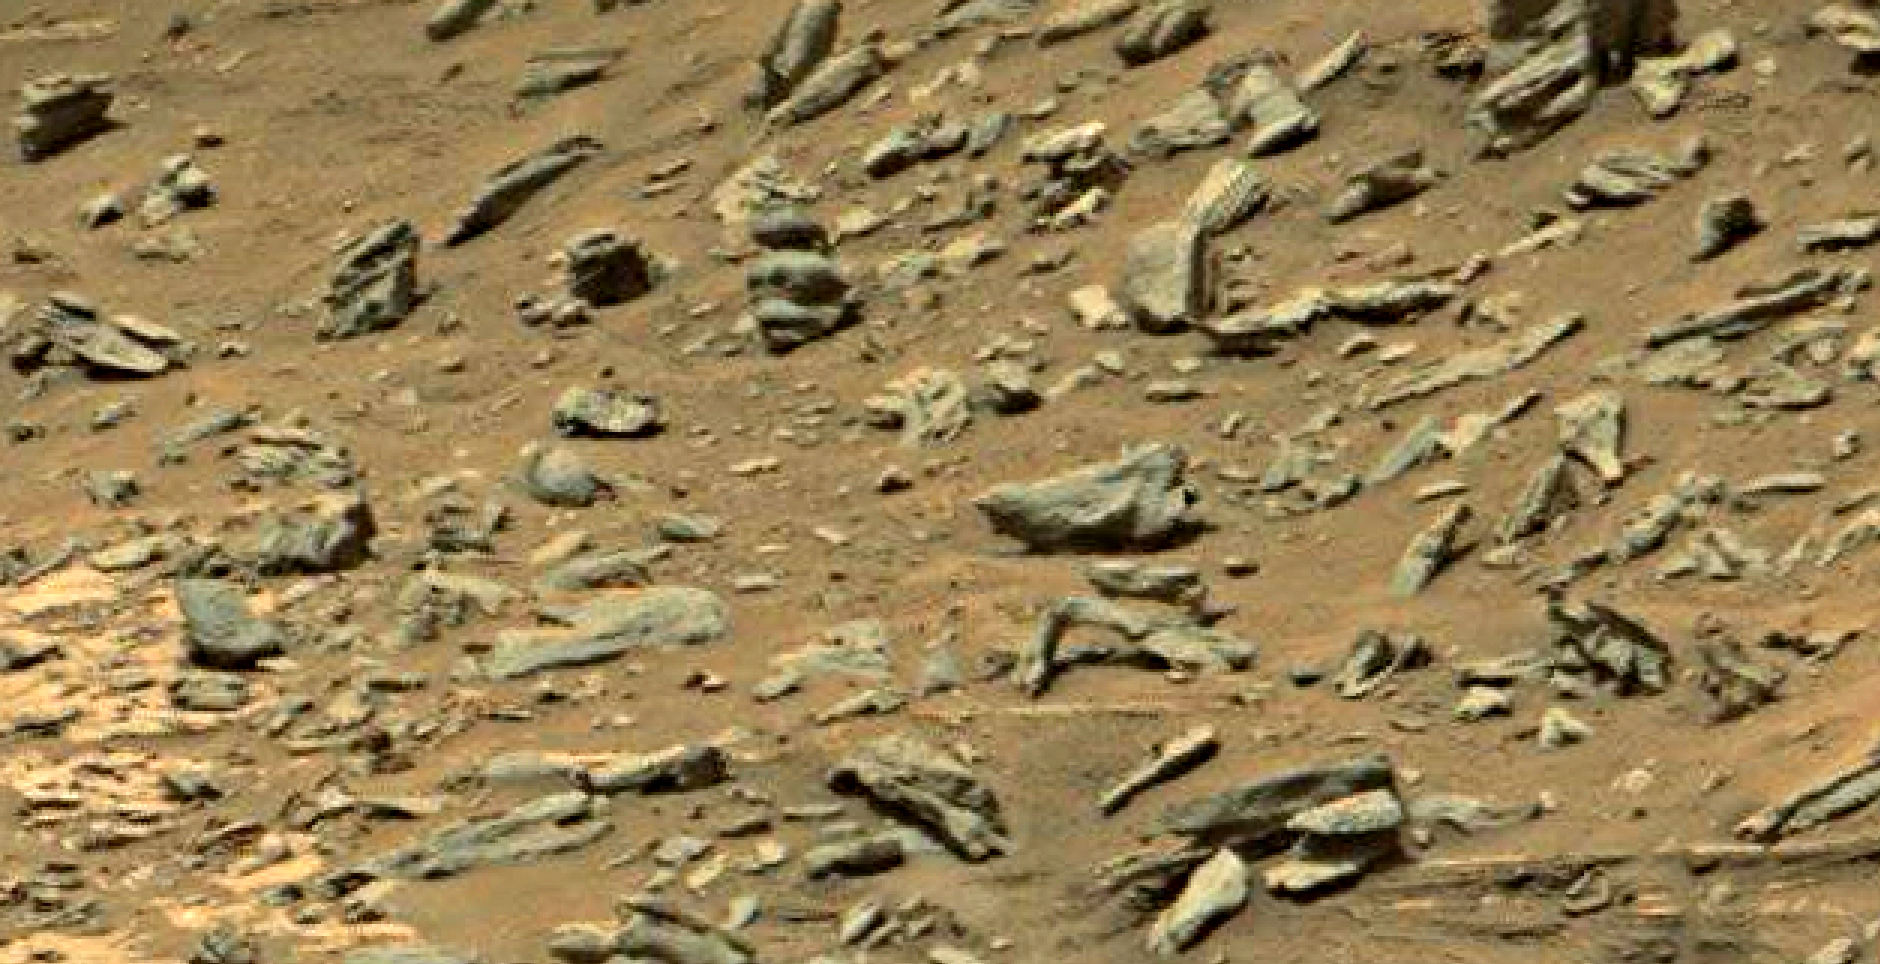 mars sol 1447 anomaly artifacts 13 - was life on mars